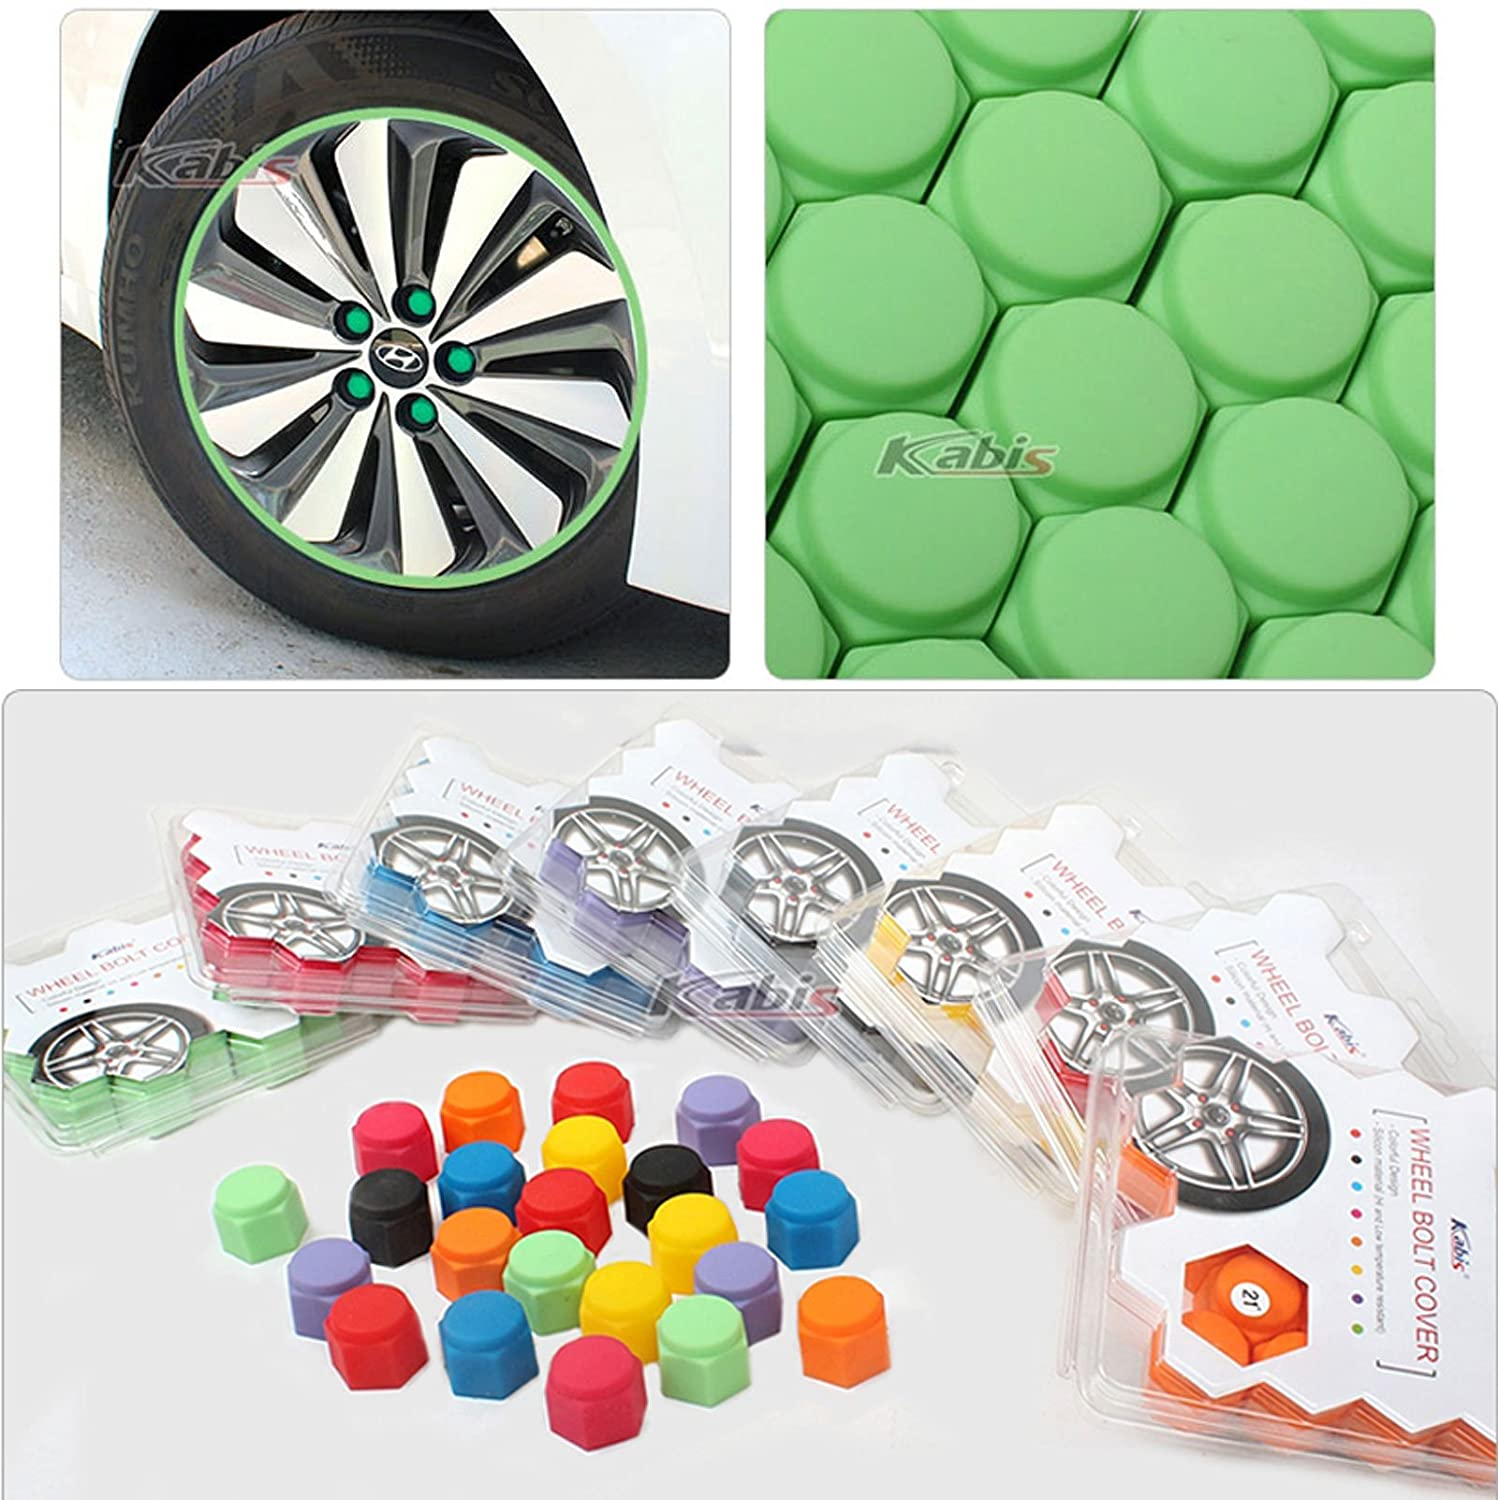 Set x20 Silicon Car Tuning Vehicle Wheel Nut Cover Bolt Cap Cover Set 8Color (21mm, Red)